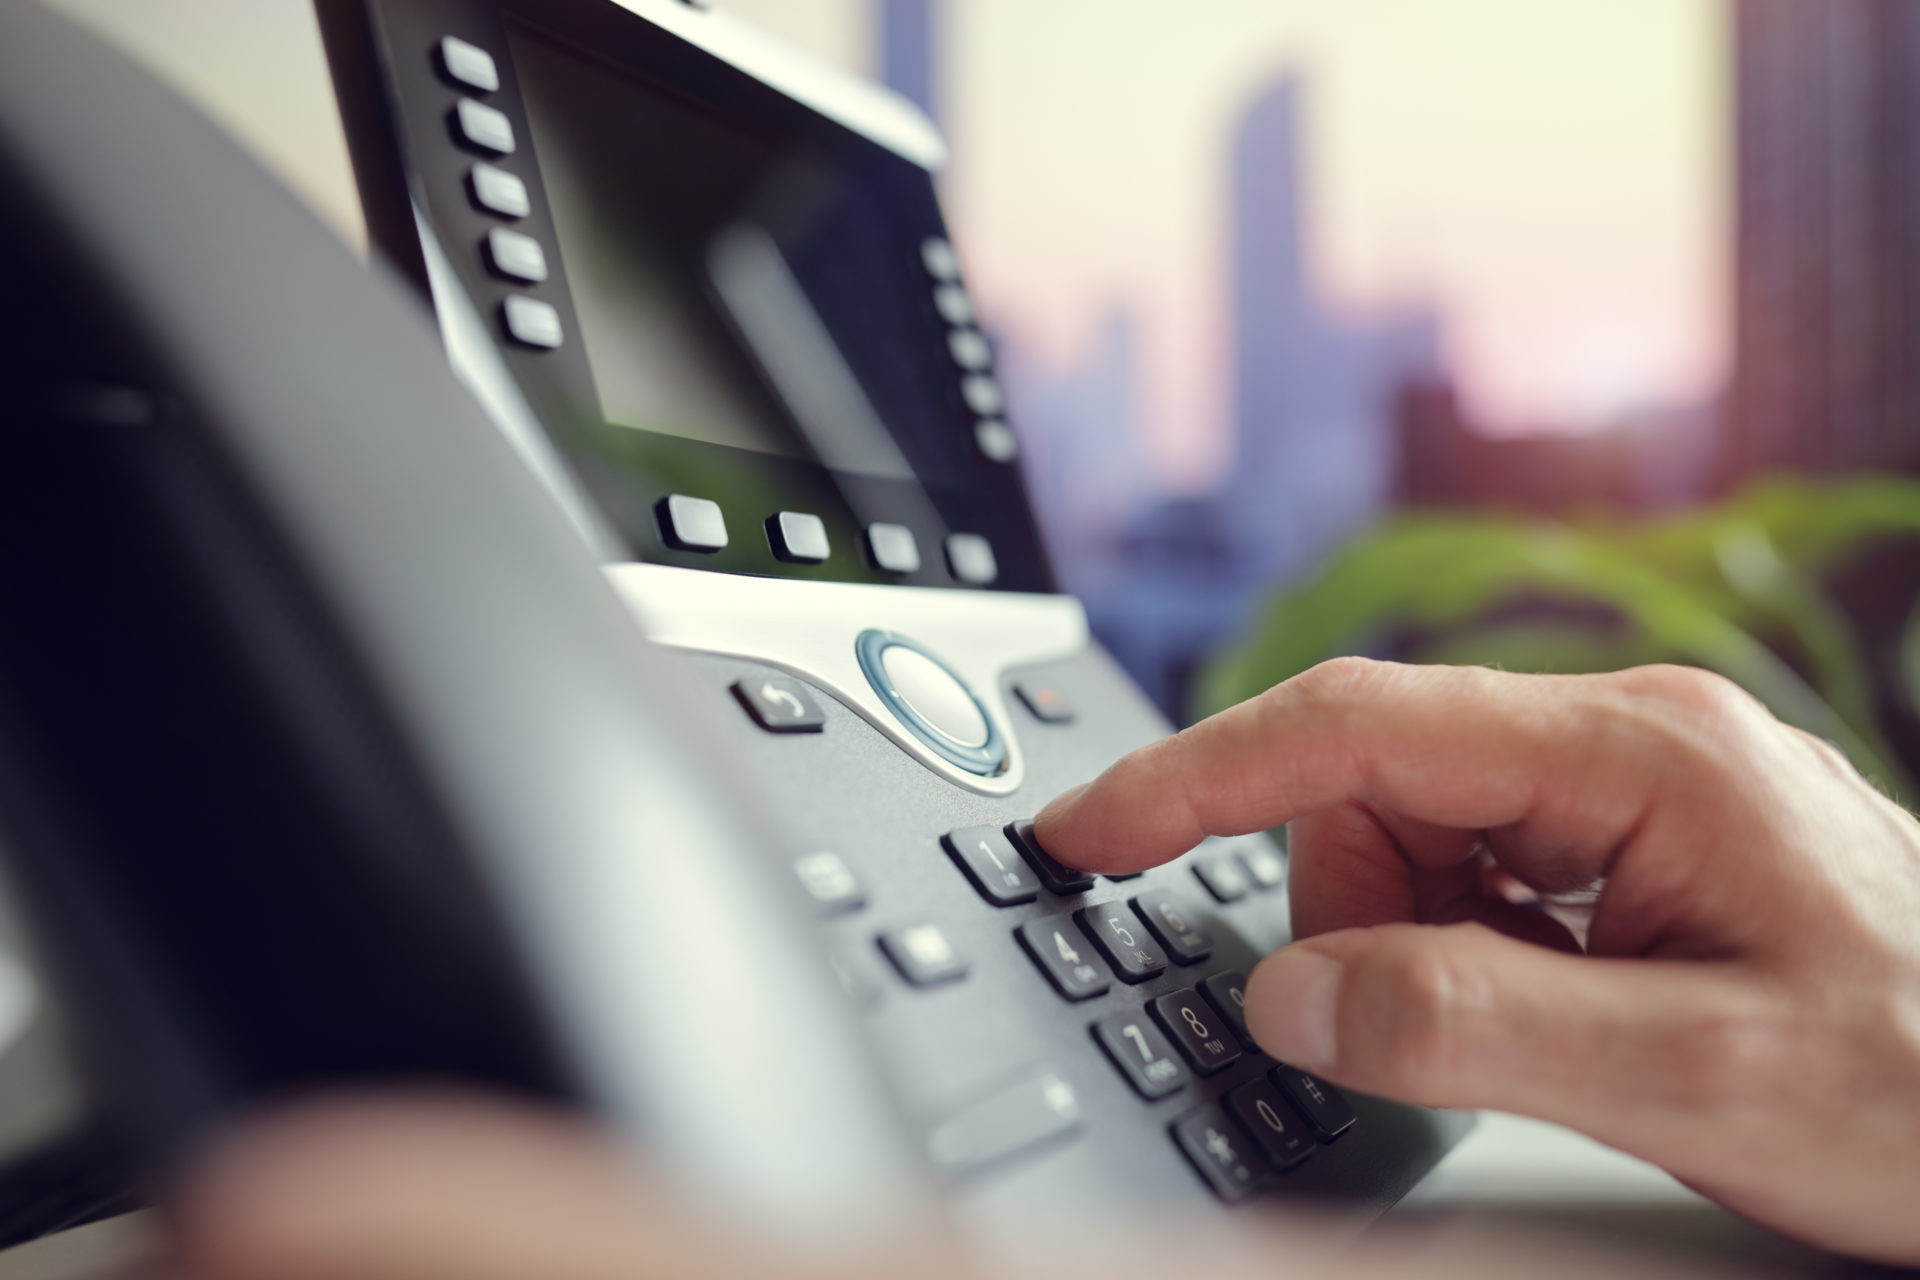 Dialing a telephone in the office - VoIP